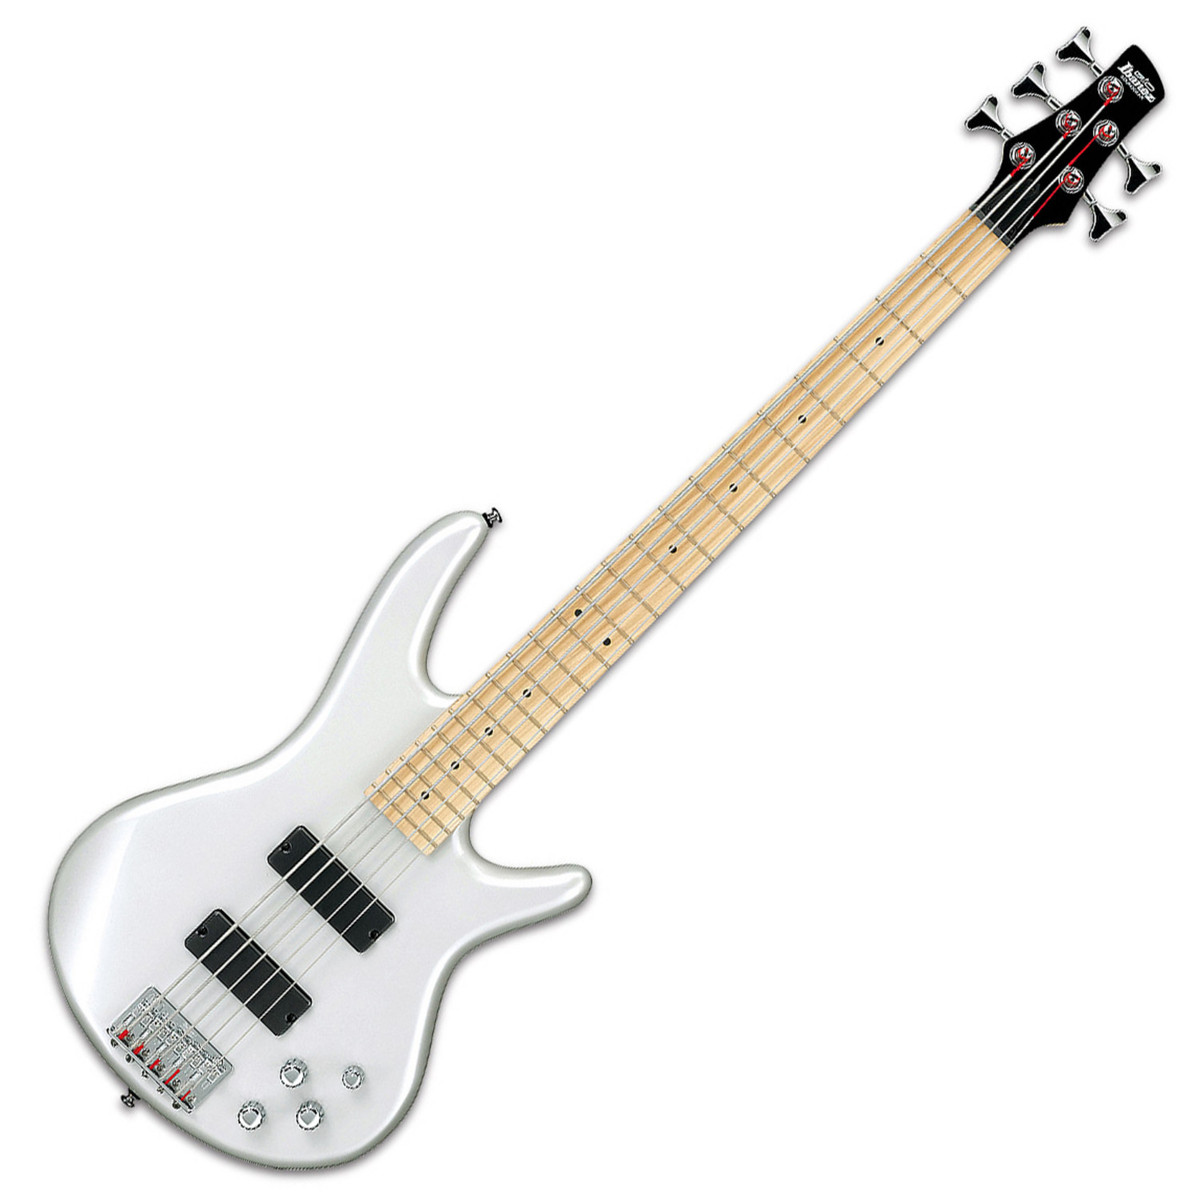 ibanez gsr205b gio 5 string bass guitar pearl white nearly new at. Black Bedroom Furniture Sets. Home Design Ideas